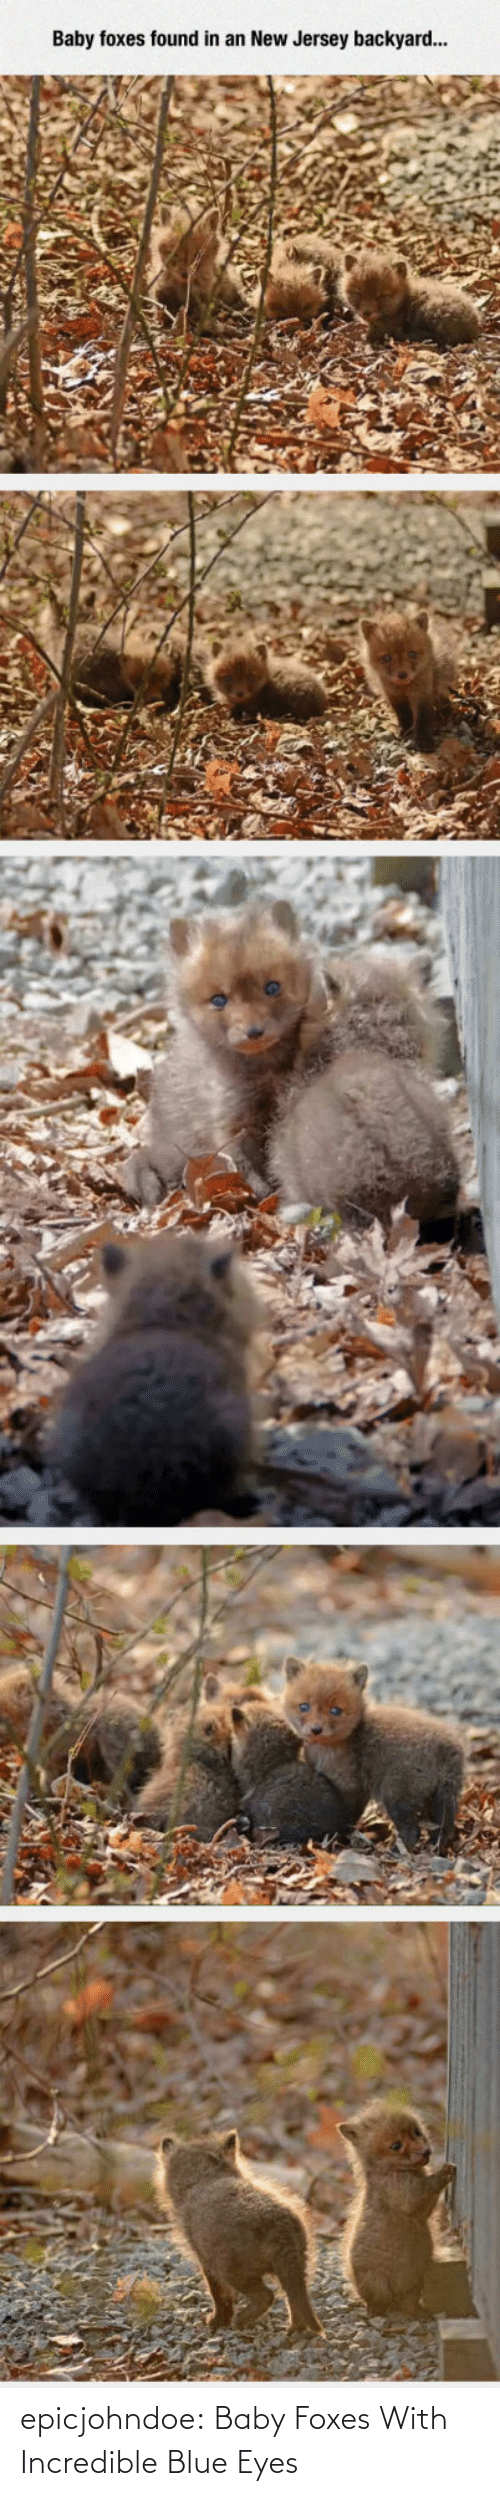 Tumblr, Blog, and Blue: epicjohndoe:  Baby Foxes With Incredible Blue Eyes